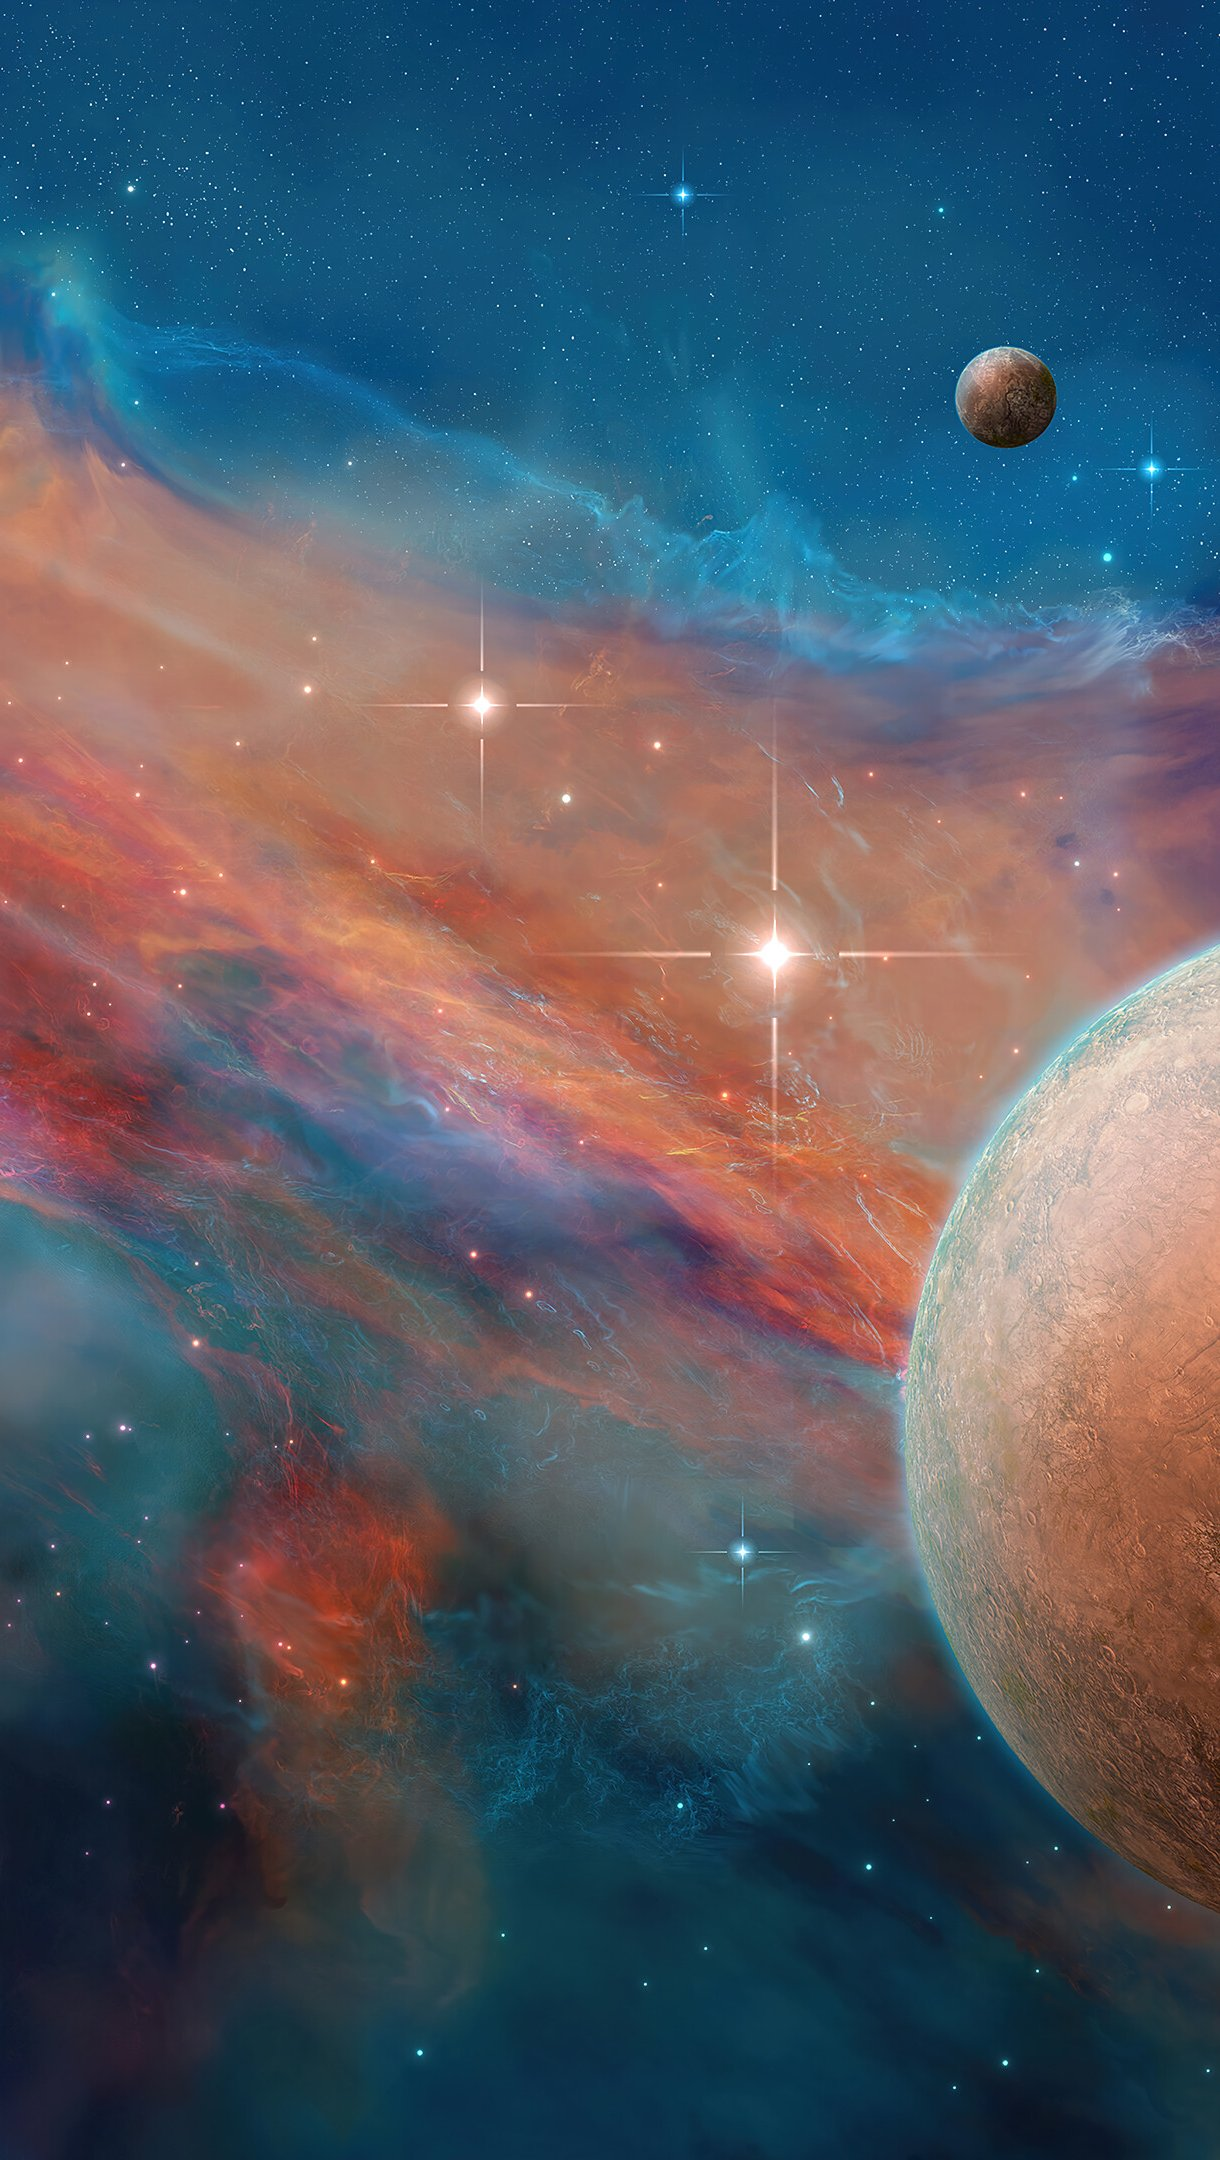 Wallpaper Planets in space with nebulas Vertical